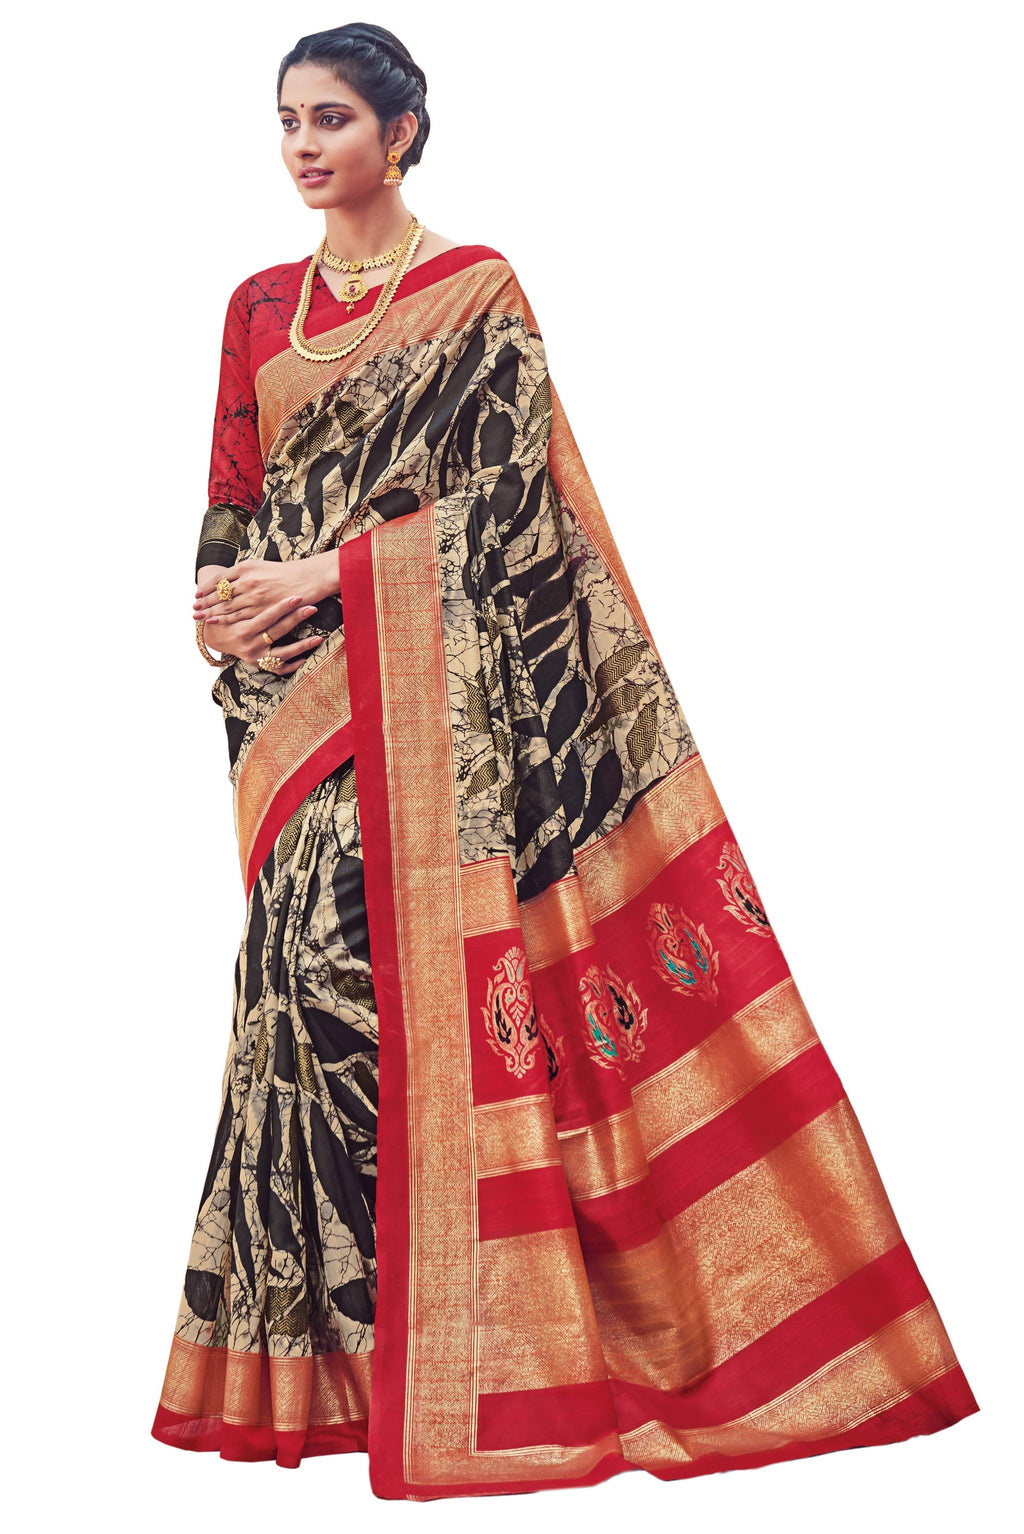 Black & Red Color Bhagalpuri Festive & Party Wear Sarees NYF-8664